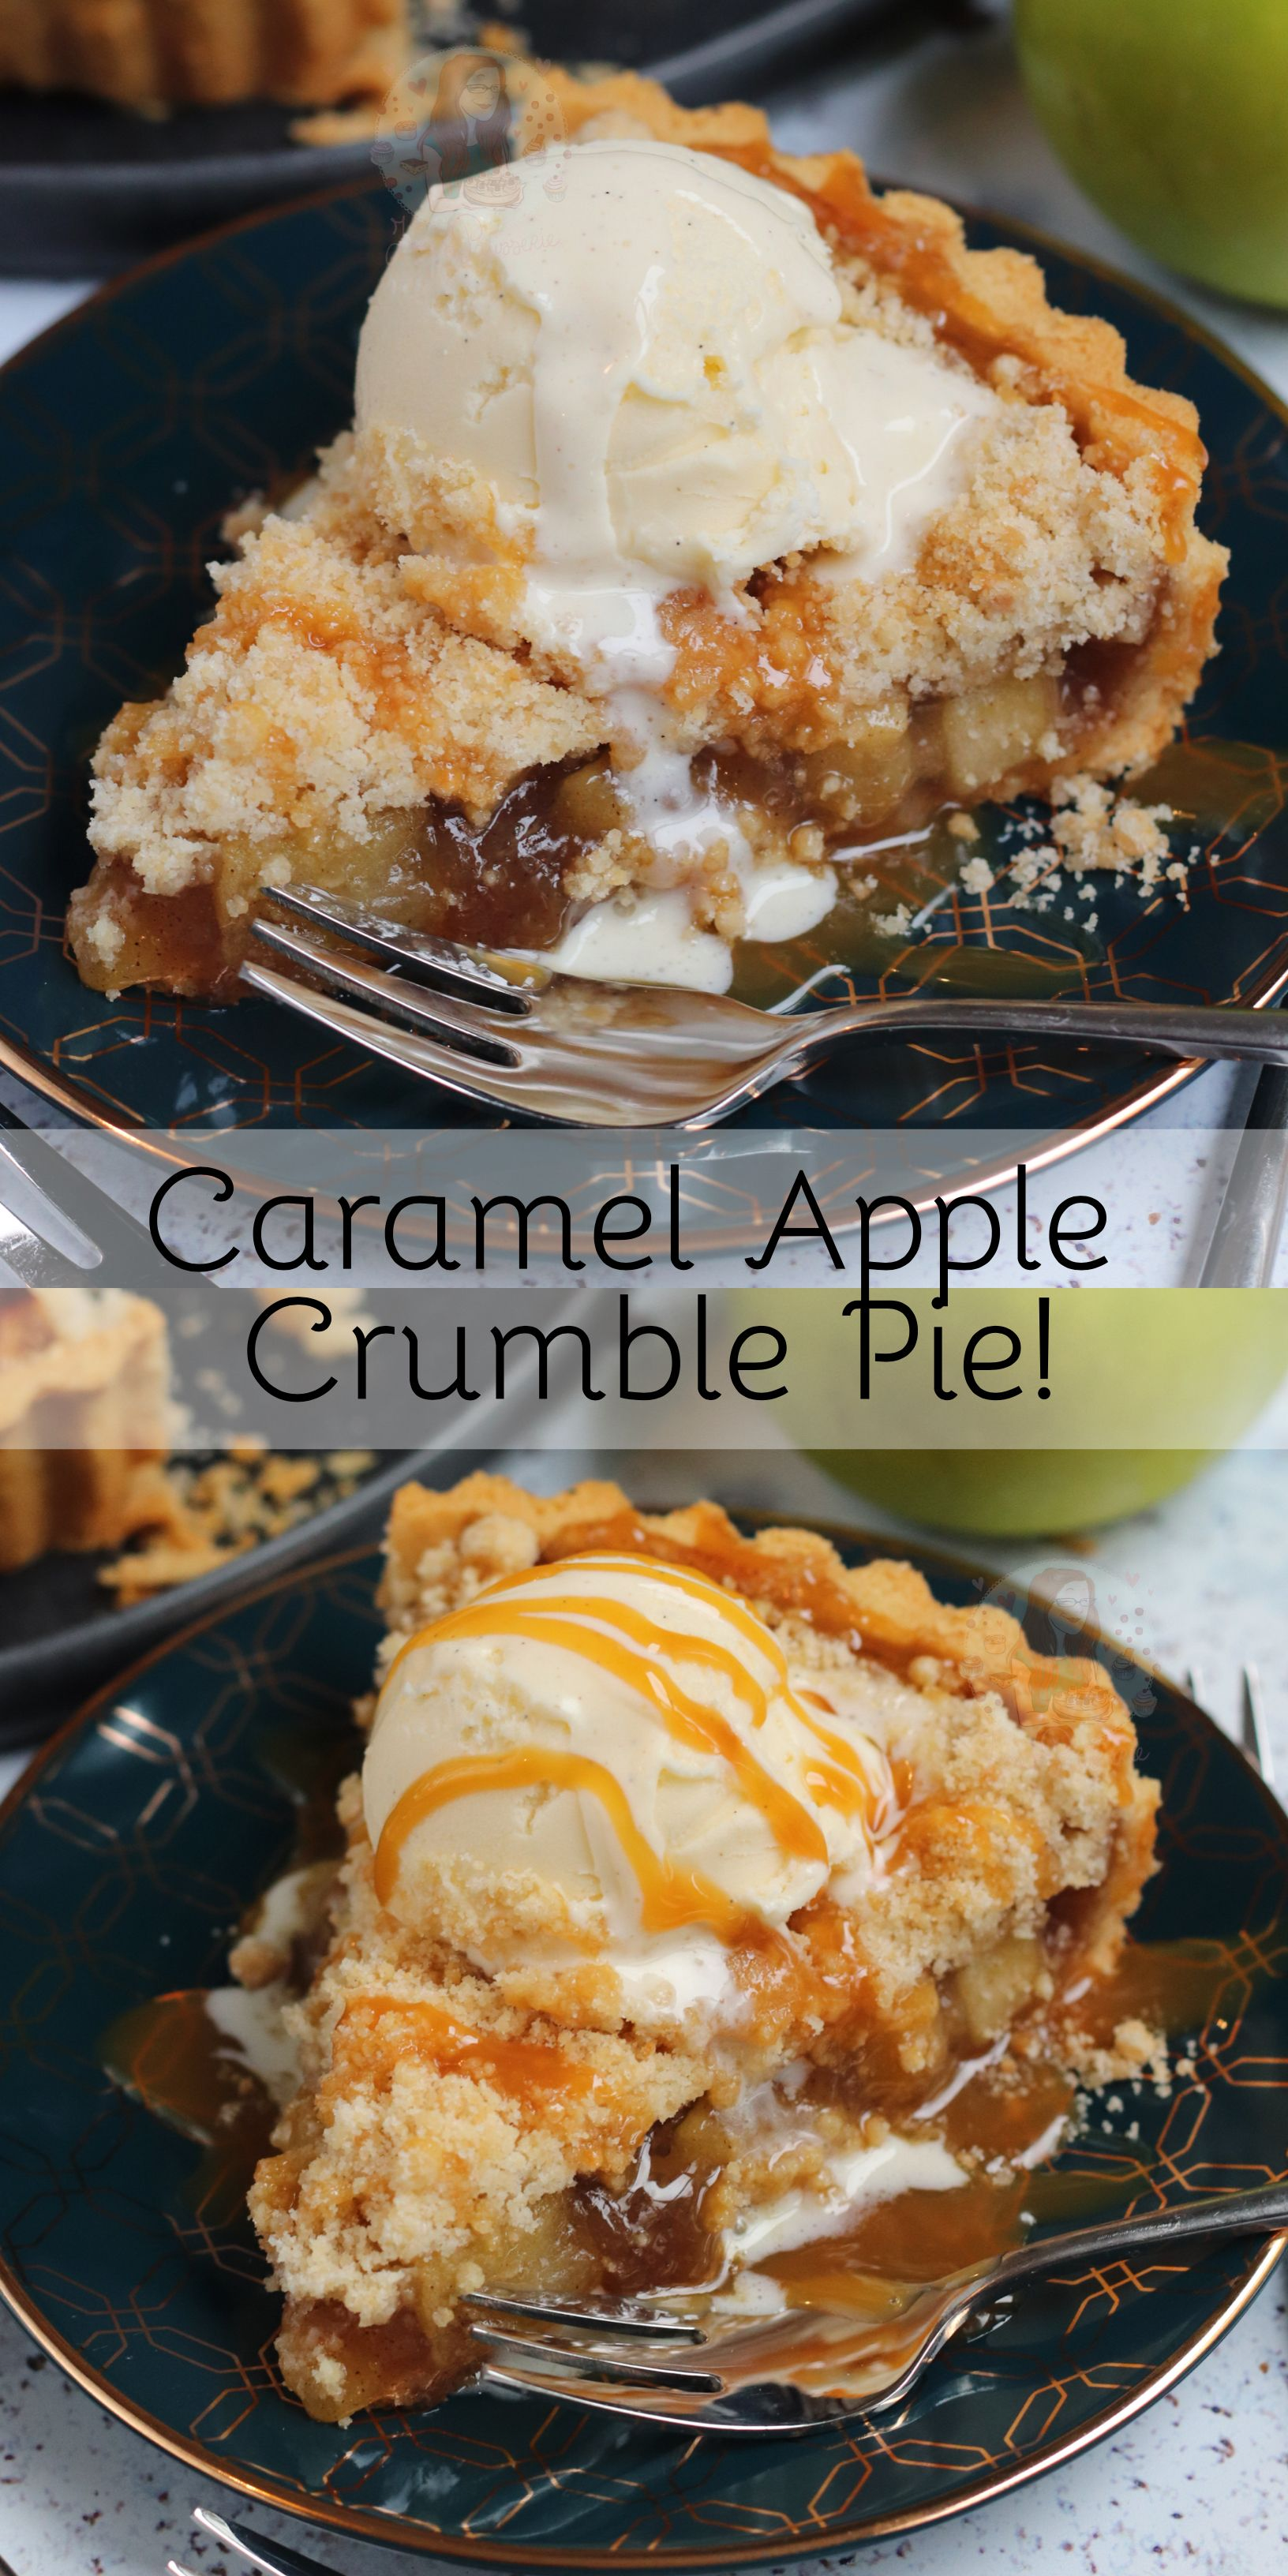 Caramel Apple Crumble Pie! #sweetpie